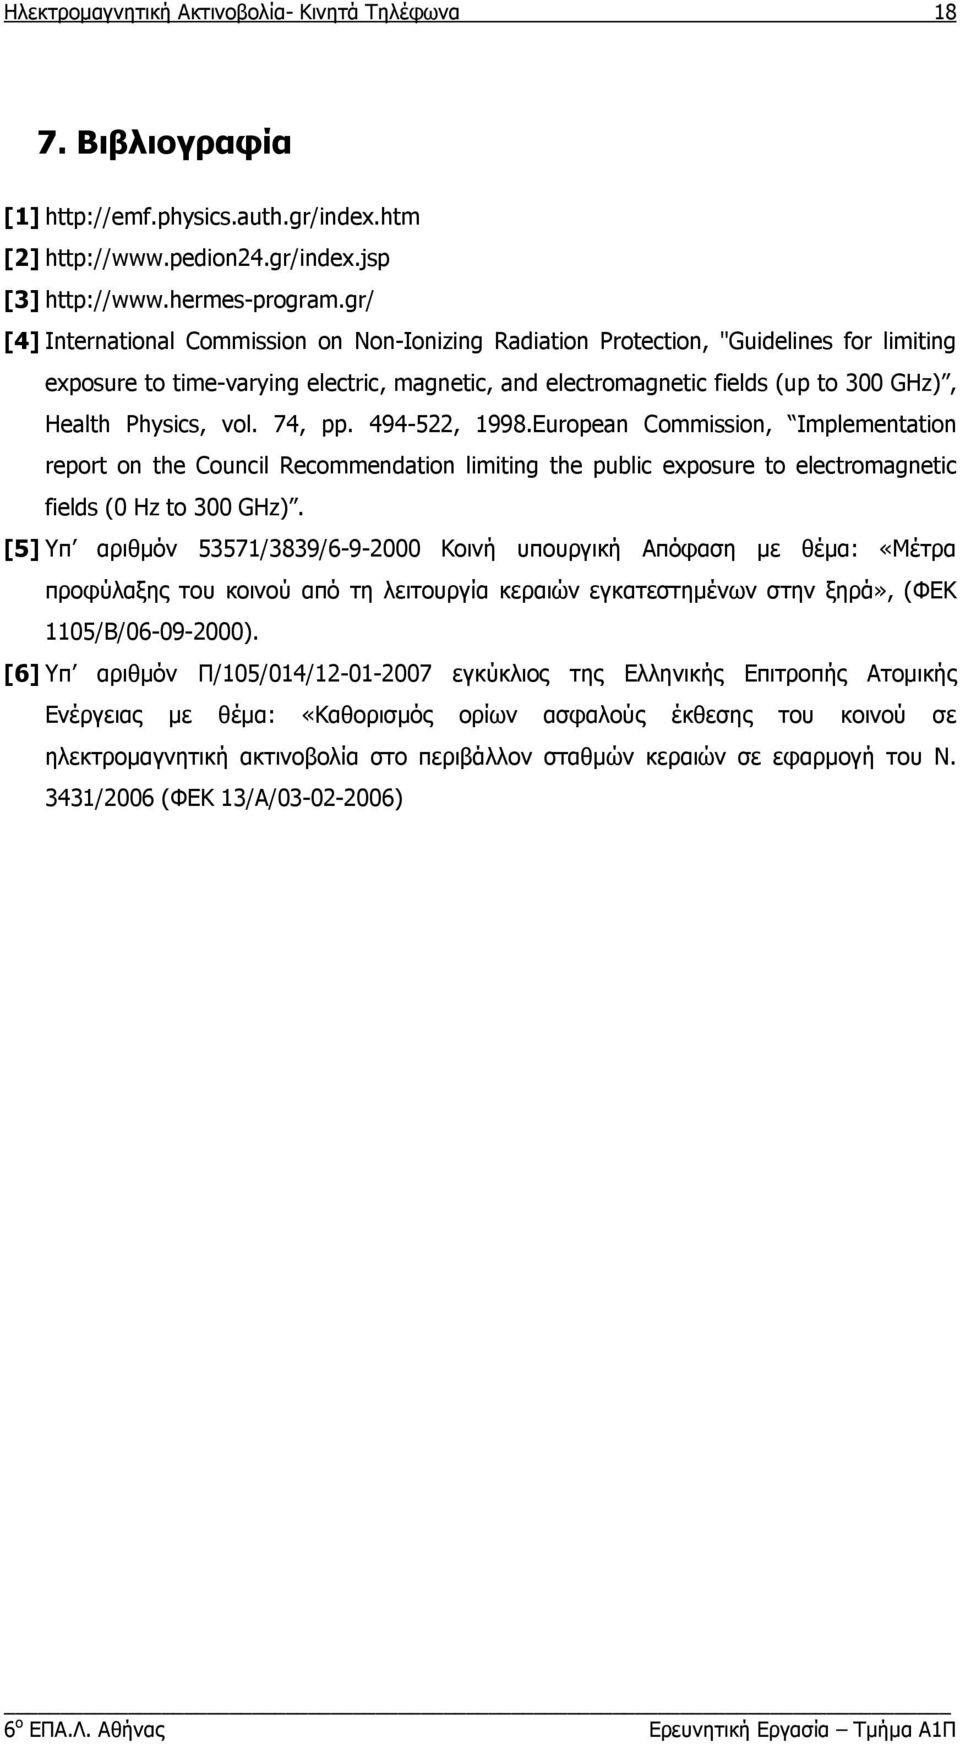 Physics, vol. 74, pp. 494-522, 1998.European Commission, Implementation report on the Council Recommendation limiting the public exposure to electromagnetic fields (0 Hz to 300 GHz).